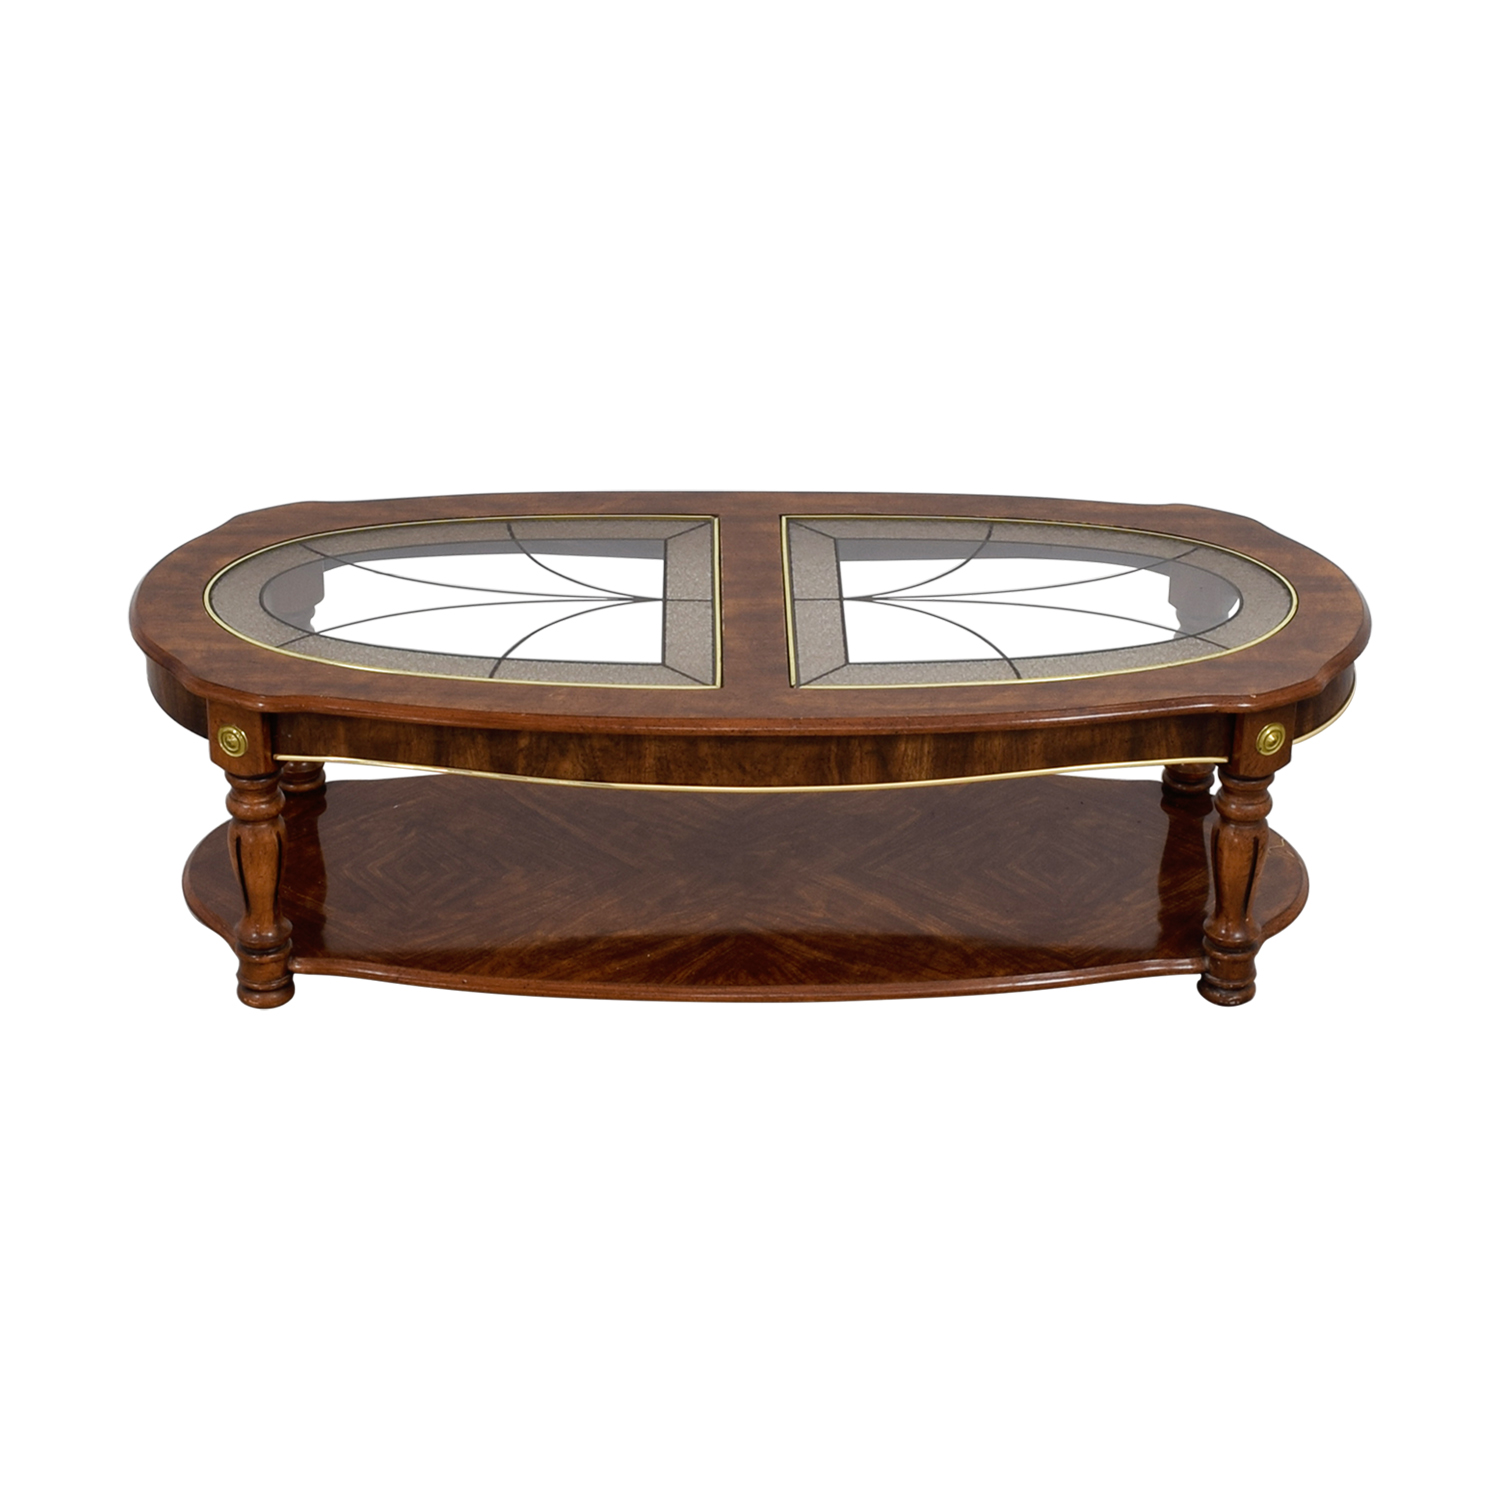 Vintage Large Oval Coffee Table / Tables